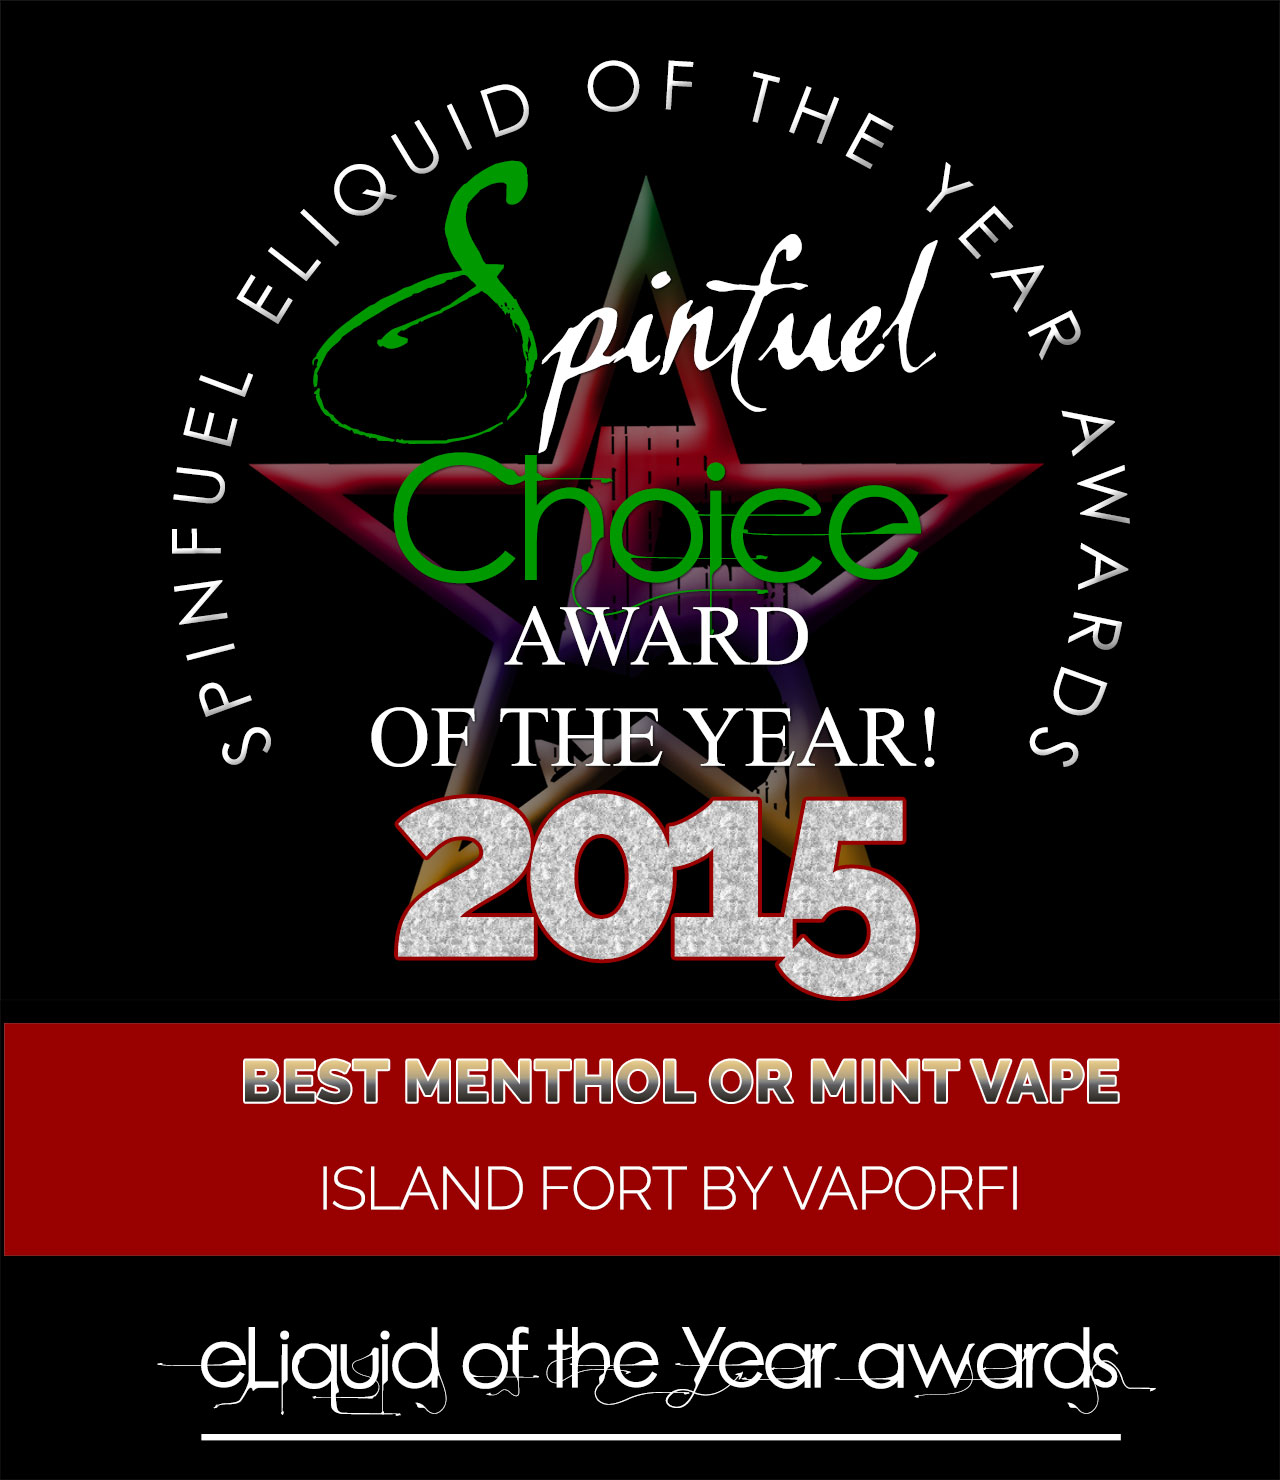 MENTHOL-MINT-ISLAND-VAPORFI - Spinfuel Choice Award 2015